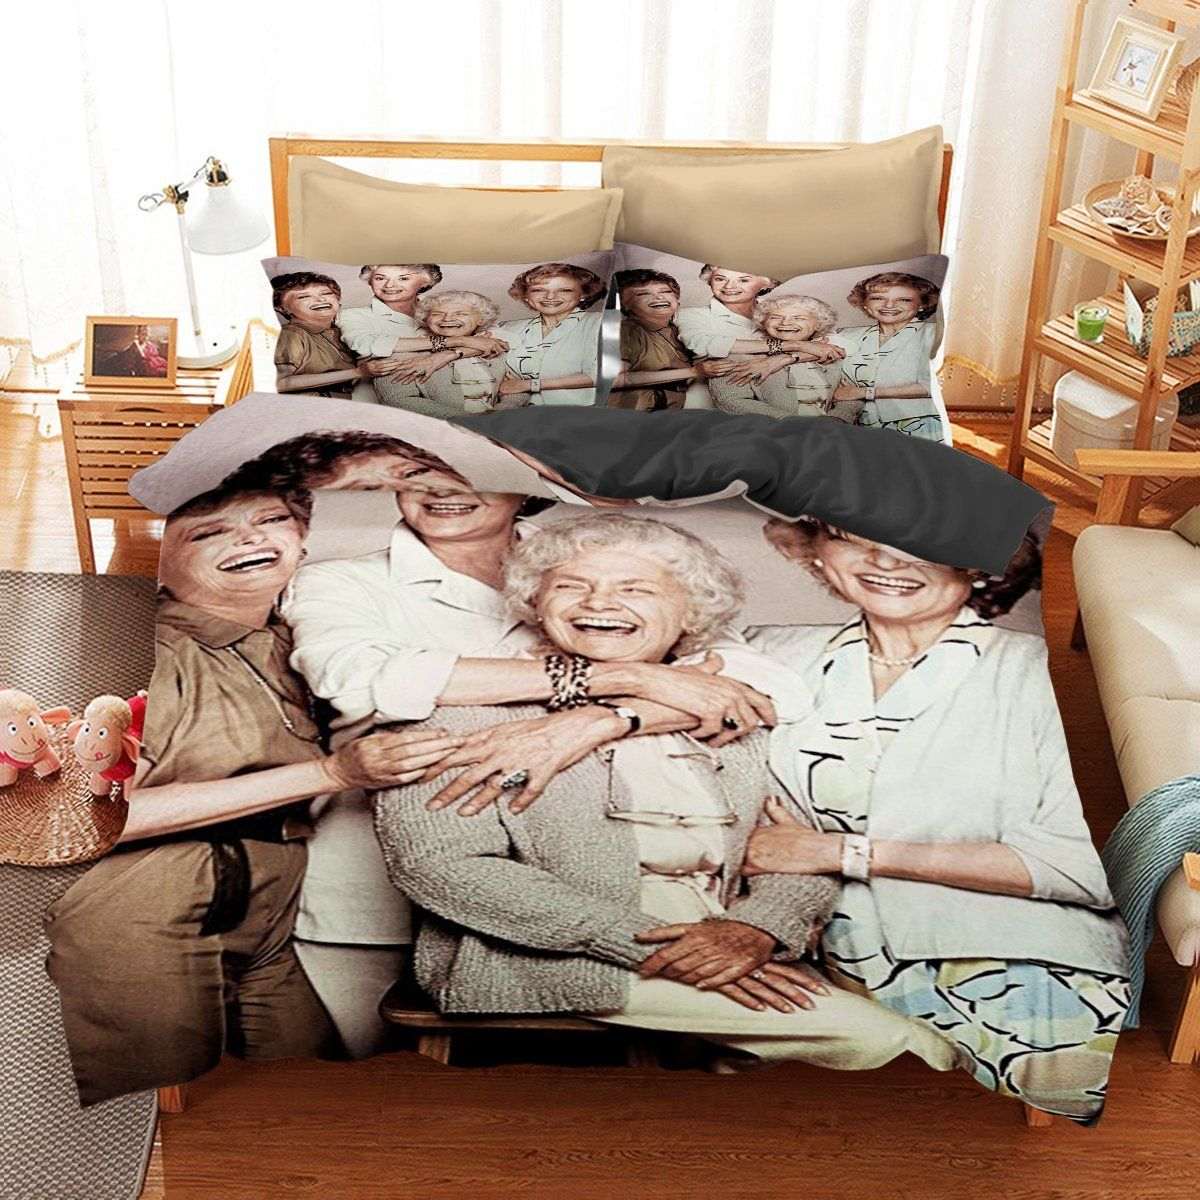 Funny The Golden Girls Bedding Set Fan Gift Idea | Girls bedding